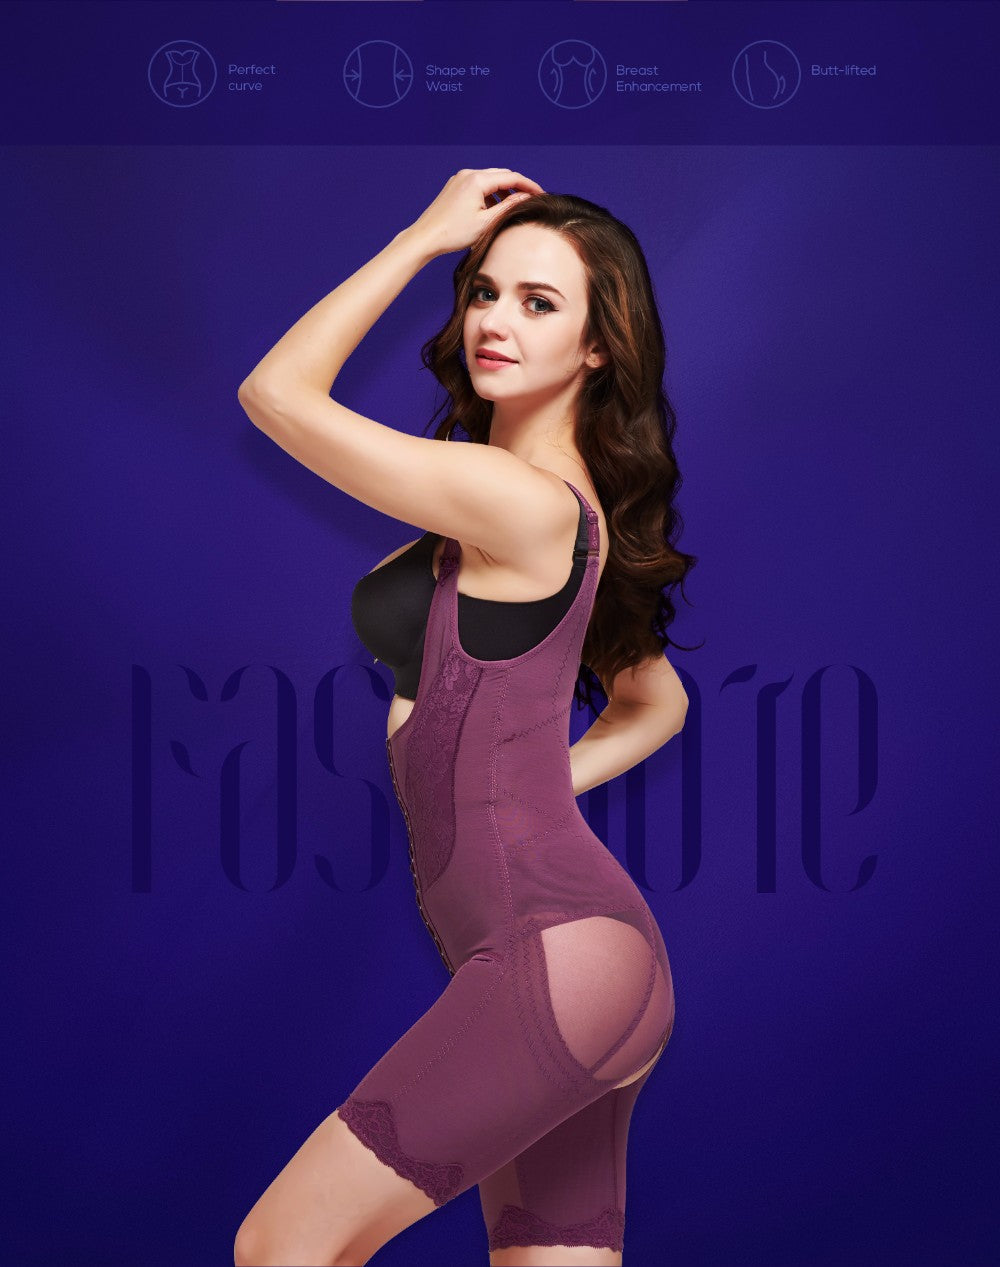 Slimming Underwear Bodysuit Waist Trainer Body Shaper Shapewear Weight Loss Corset For Women